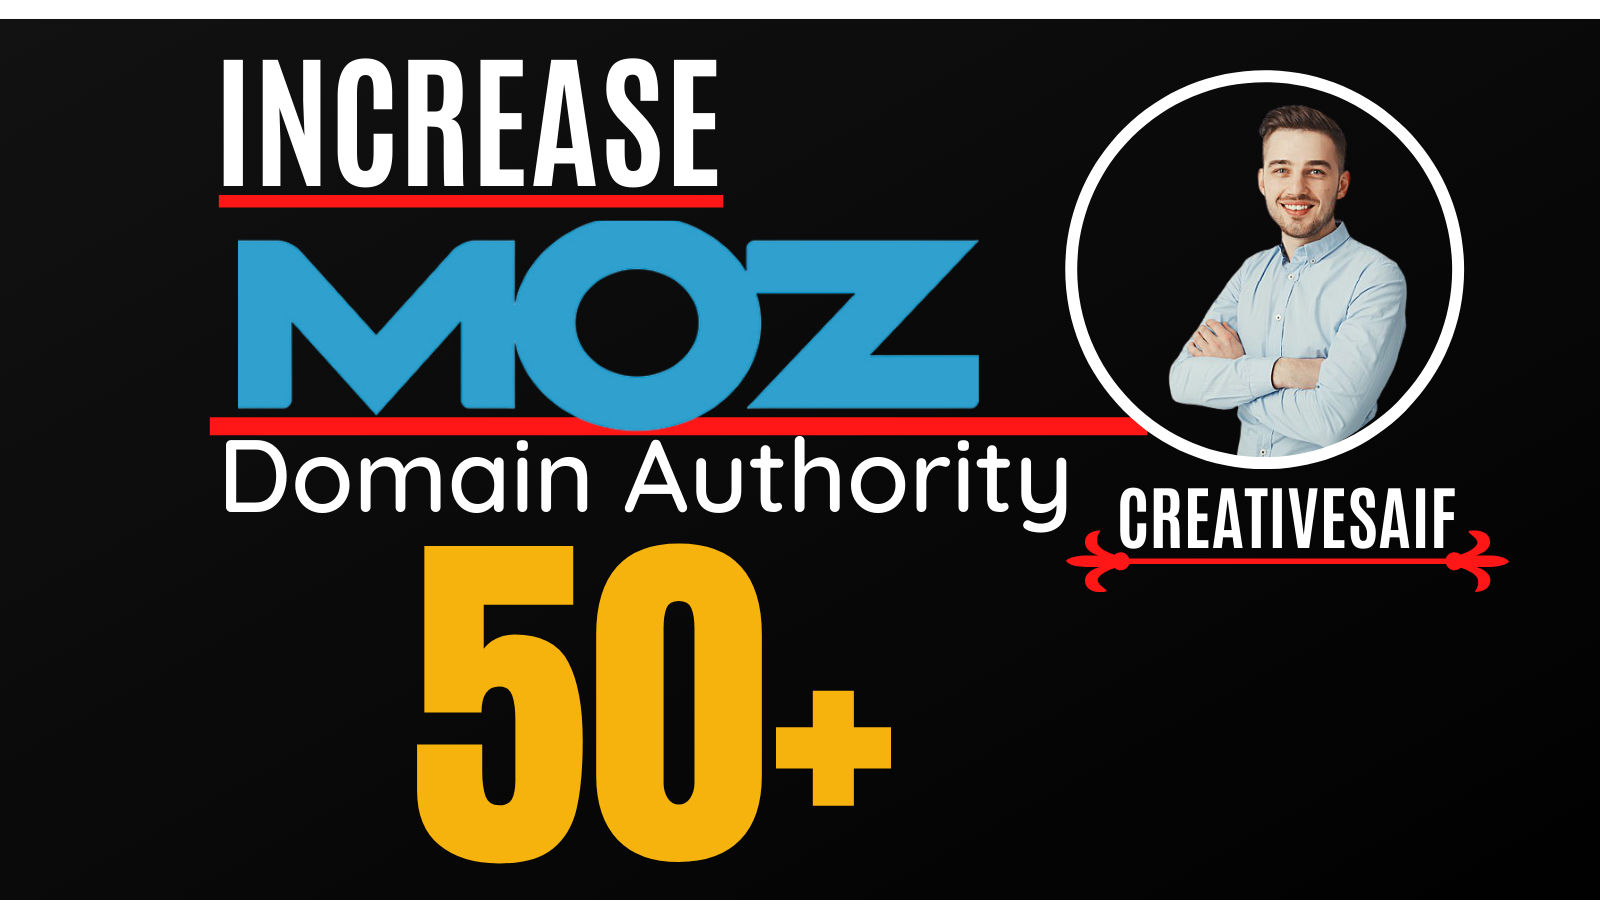 I will increase moz domain authority,  increase moz da 0 to 50 plus SEO